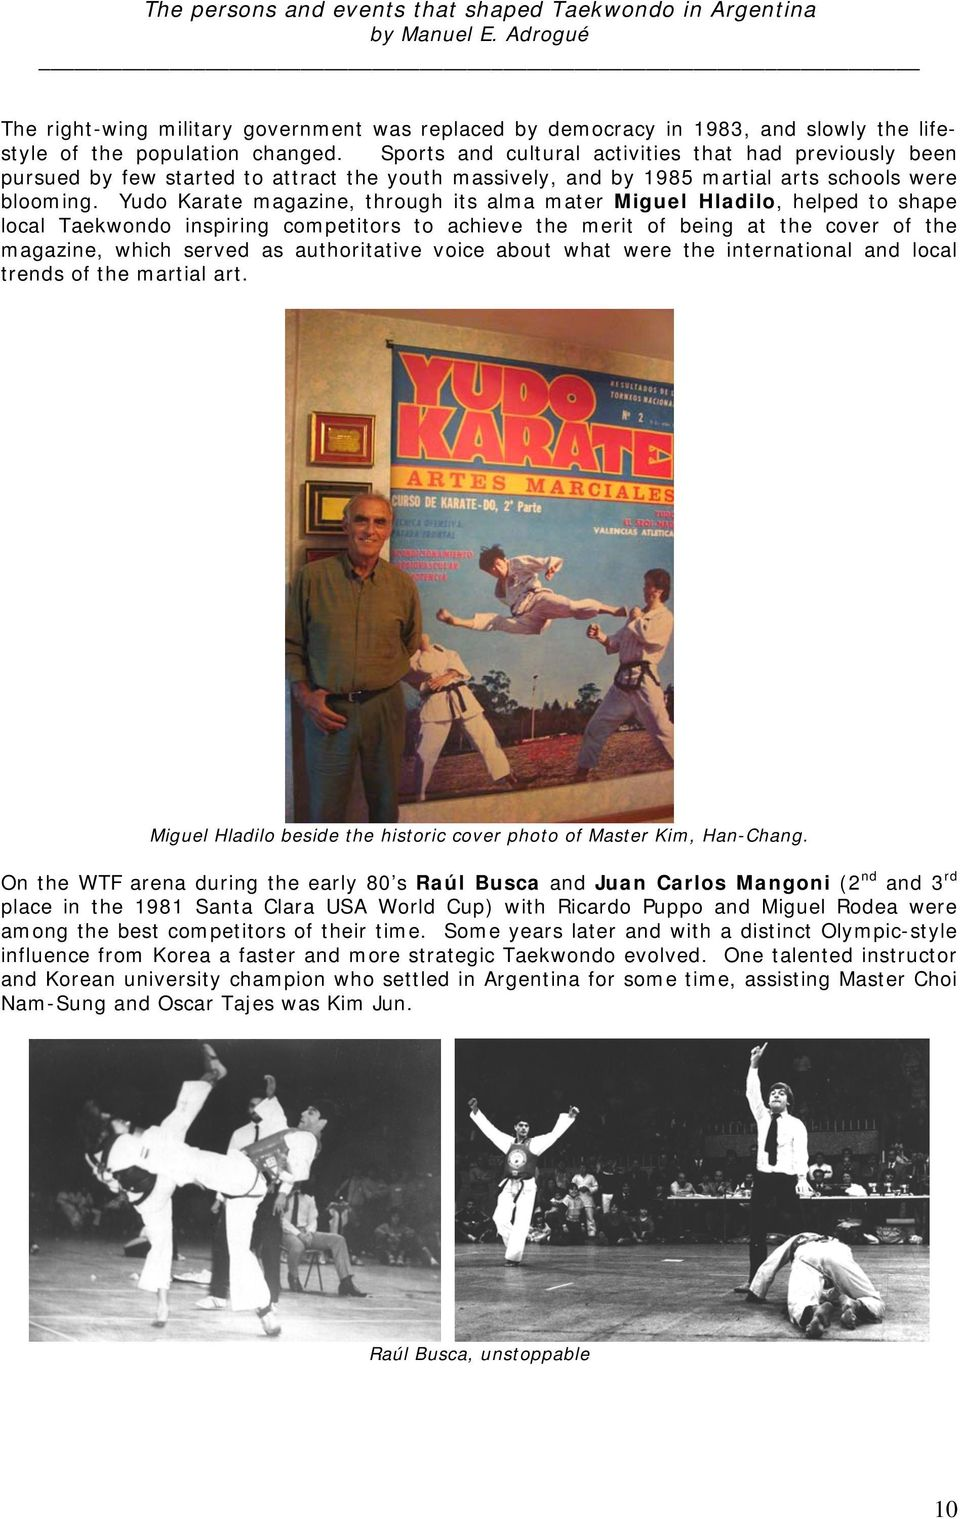 Yudo Karate magazine, through its alma mater Miguel Hladilo, helped to shape local Taekwondo inspiring competitors to achieve the merit of being at the cover of the magazine, which served as